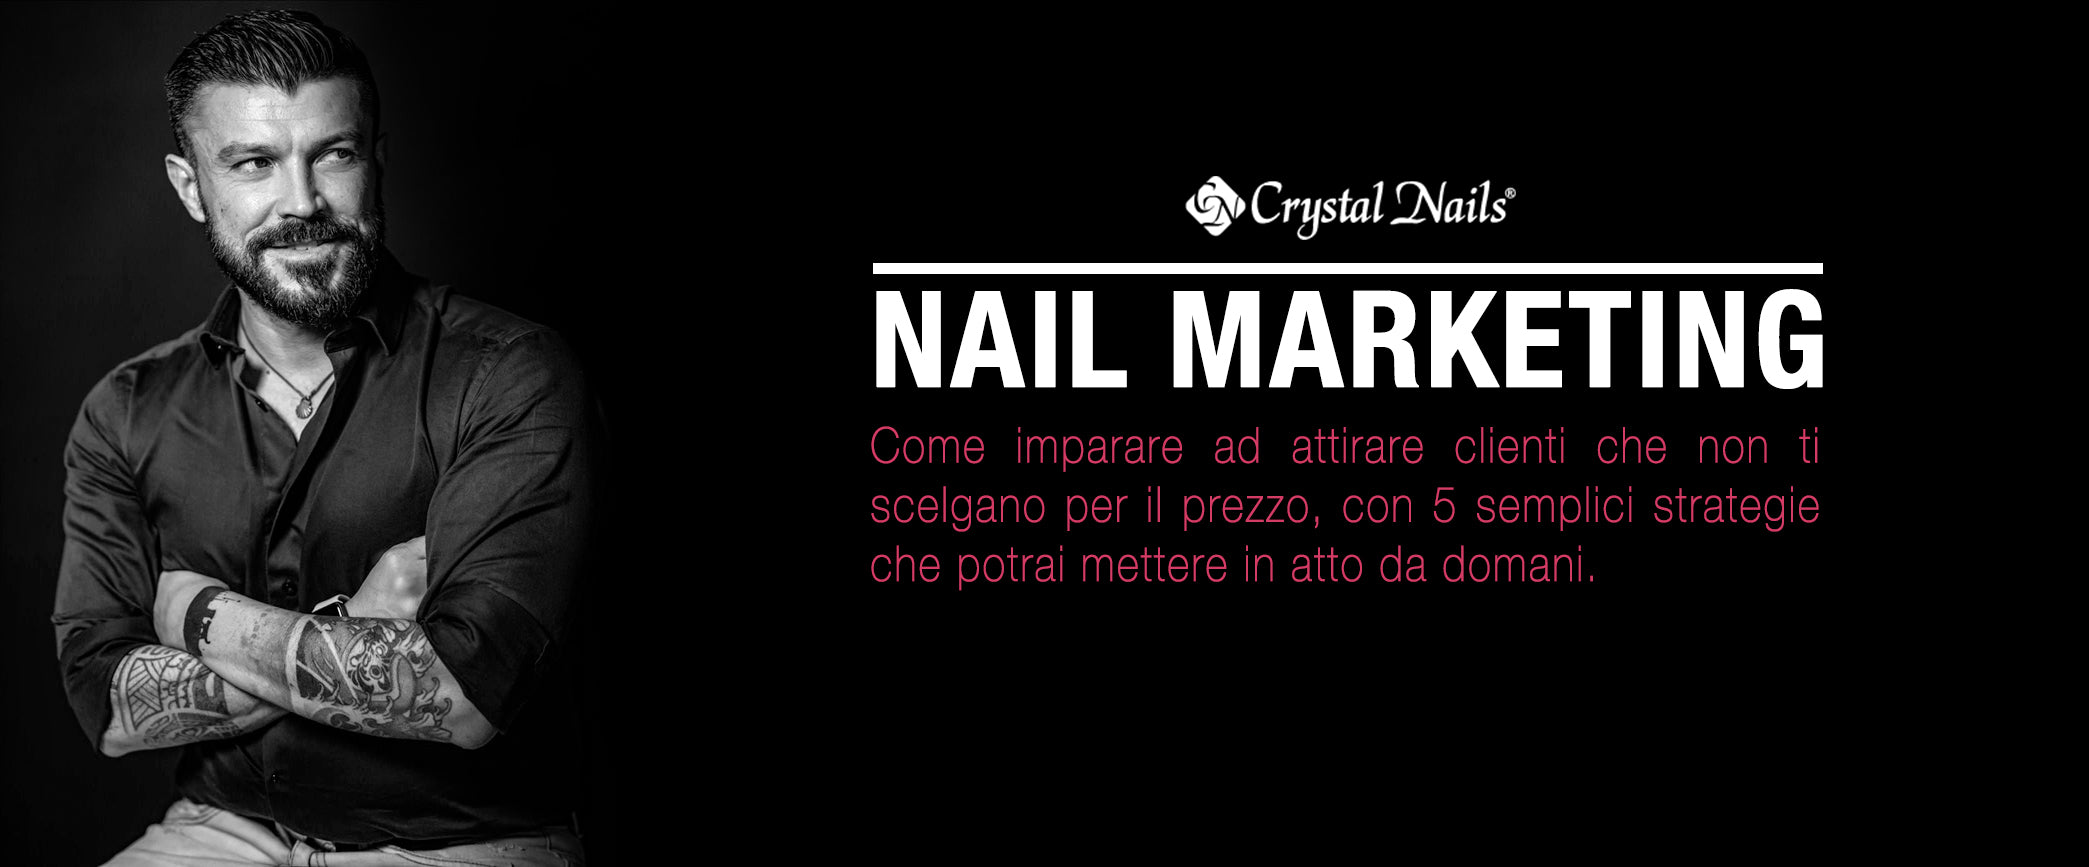 nail marketing abrazo rubin crystal nails